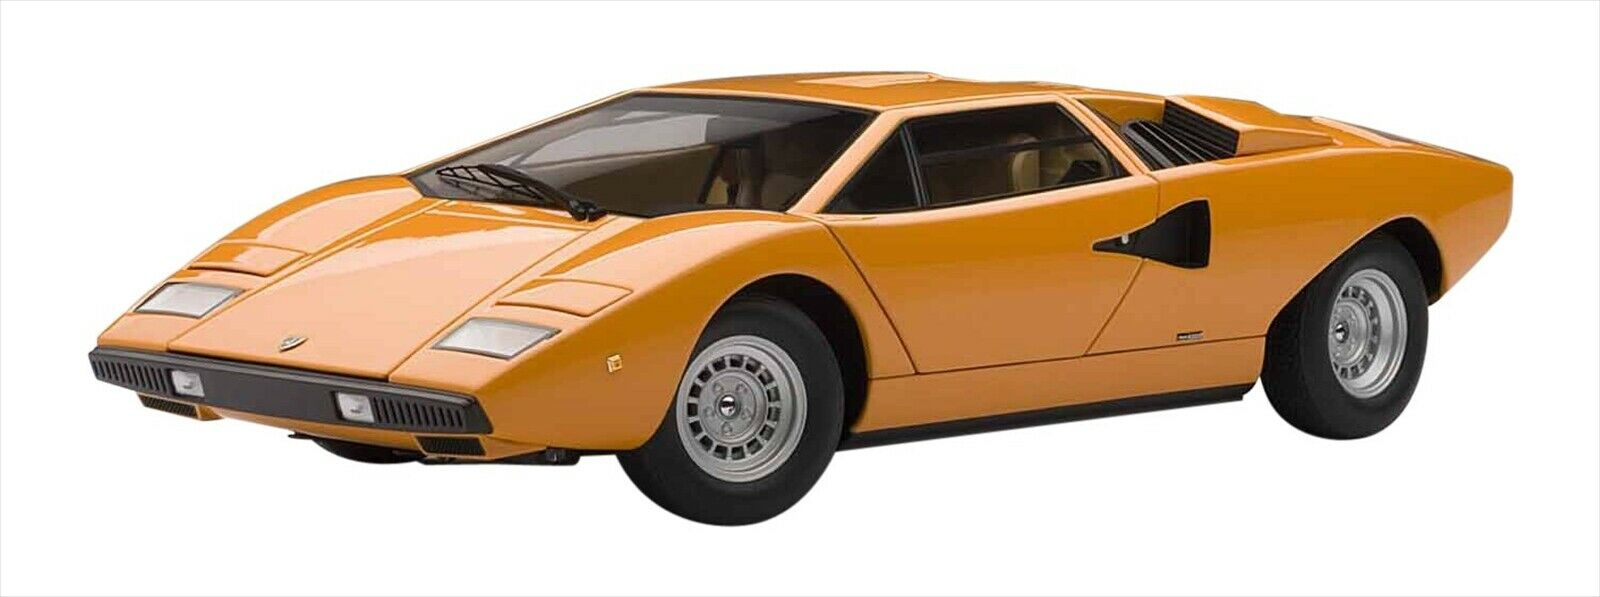 AUTOart 1 18 Lamborghini counterk LP400 (orange) 74647 Japan NEW